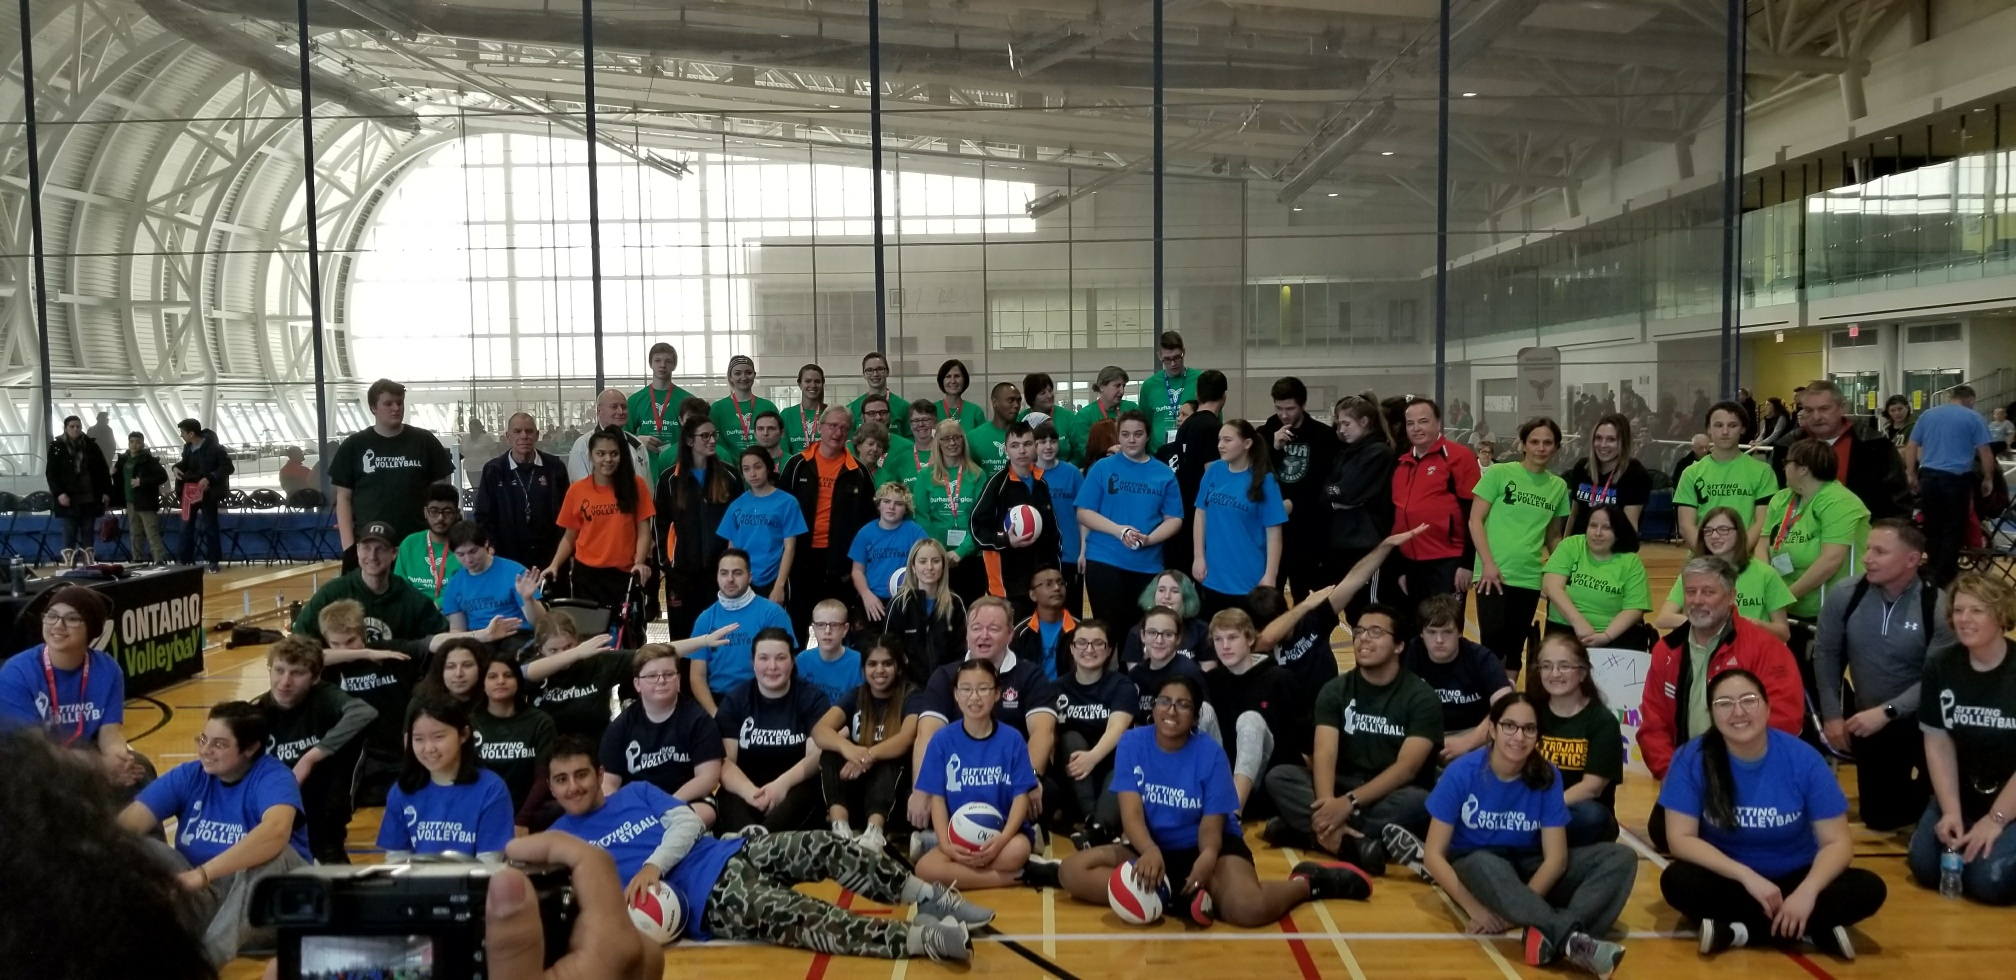 Sitting volleyball participants at the 2018 Ontario Parasport Games